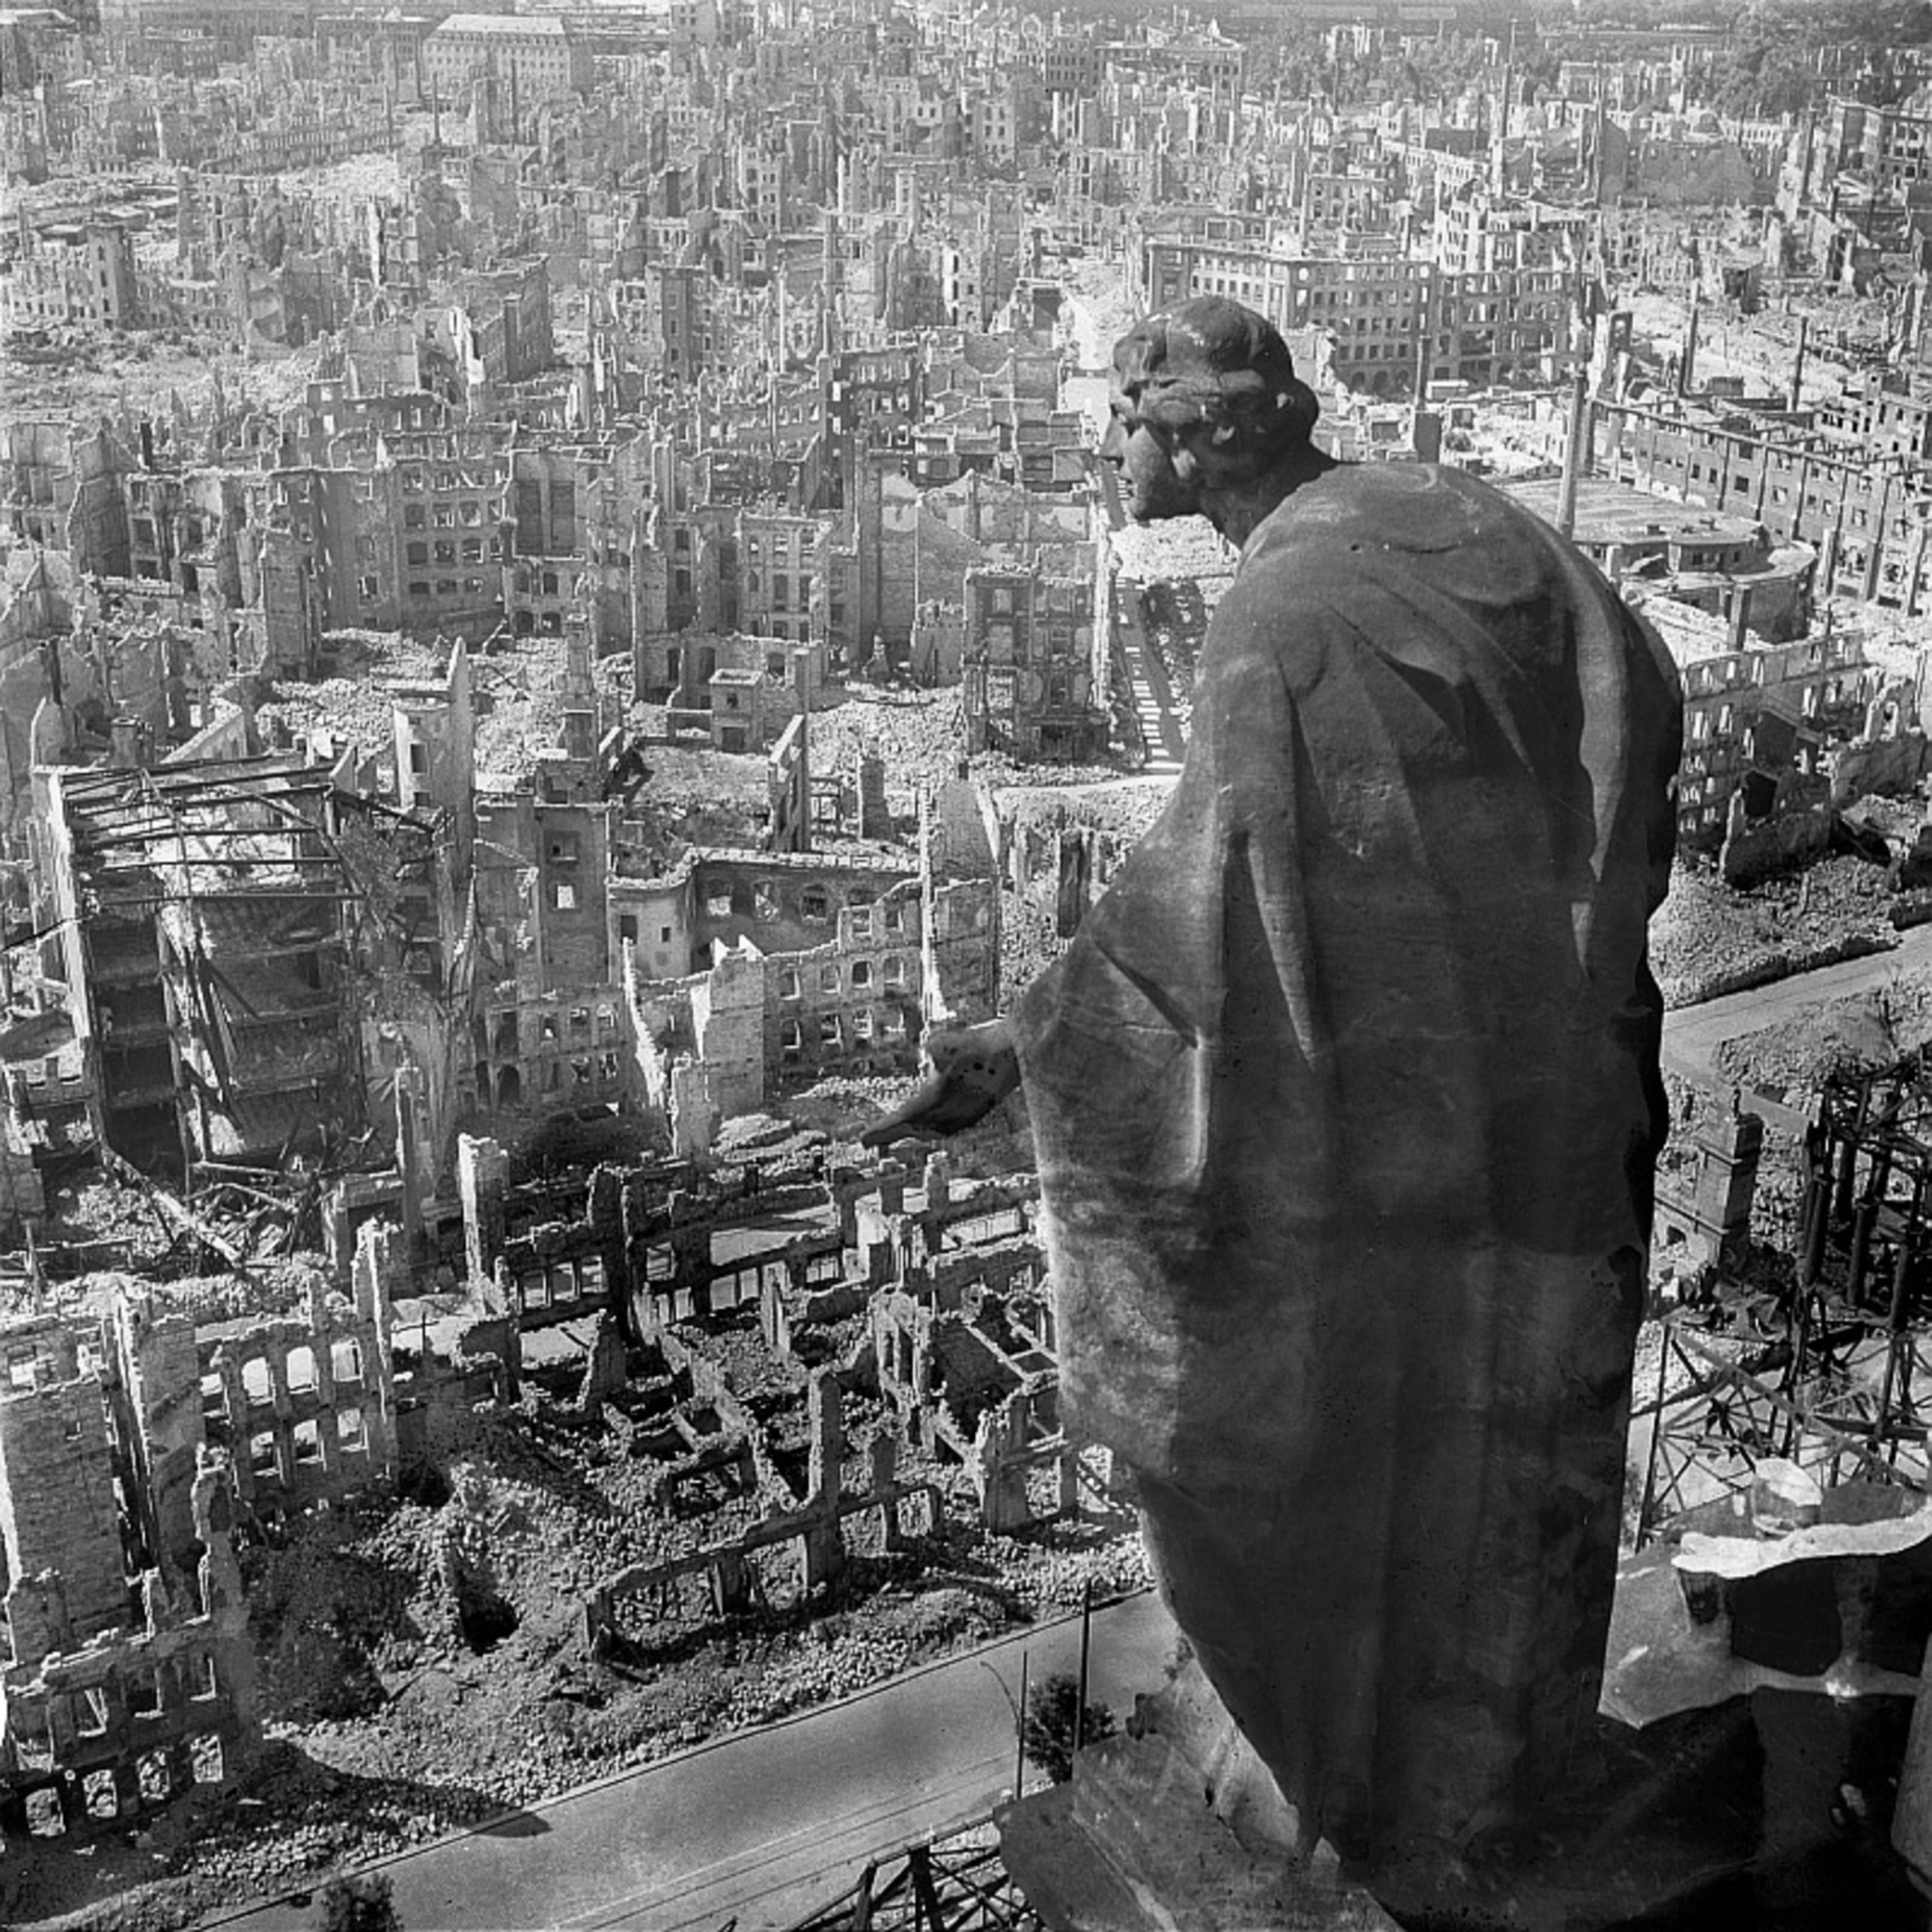 Dresden, ruins, bombing, WW2, WWII, Germany, history, mourning